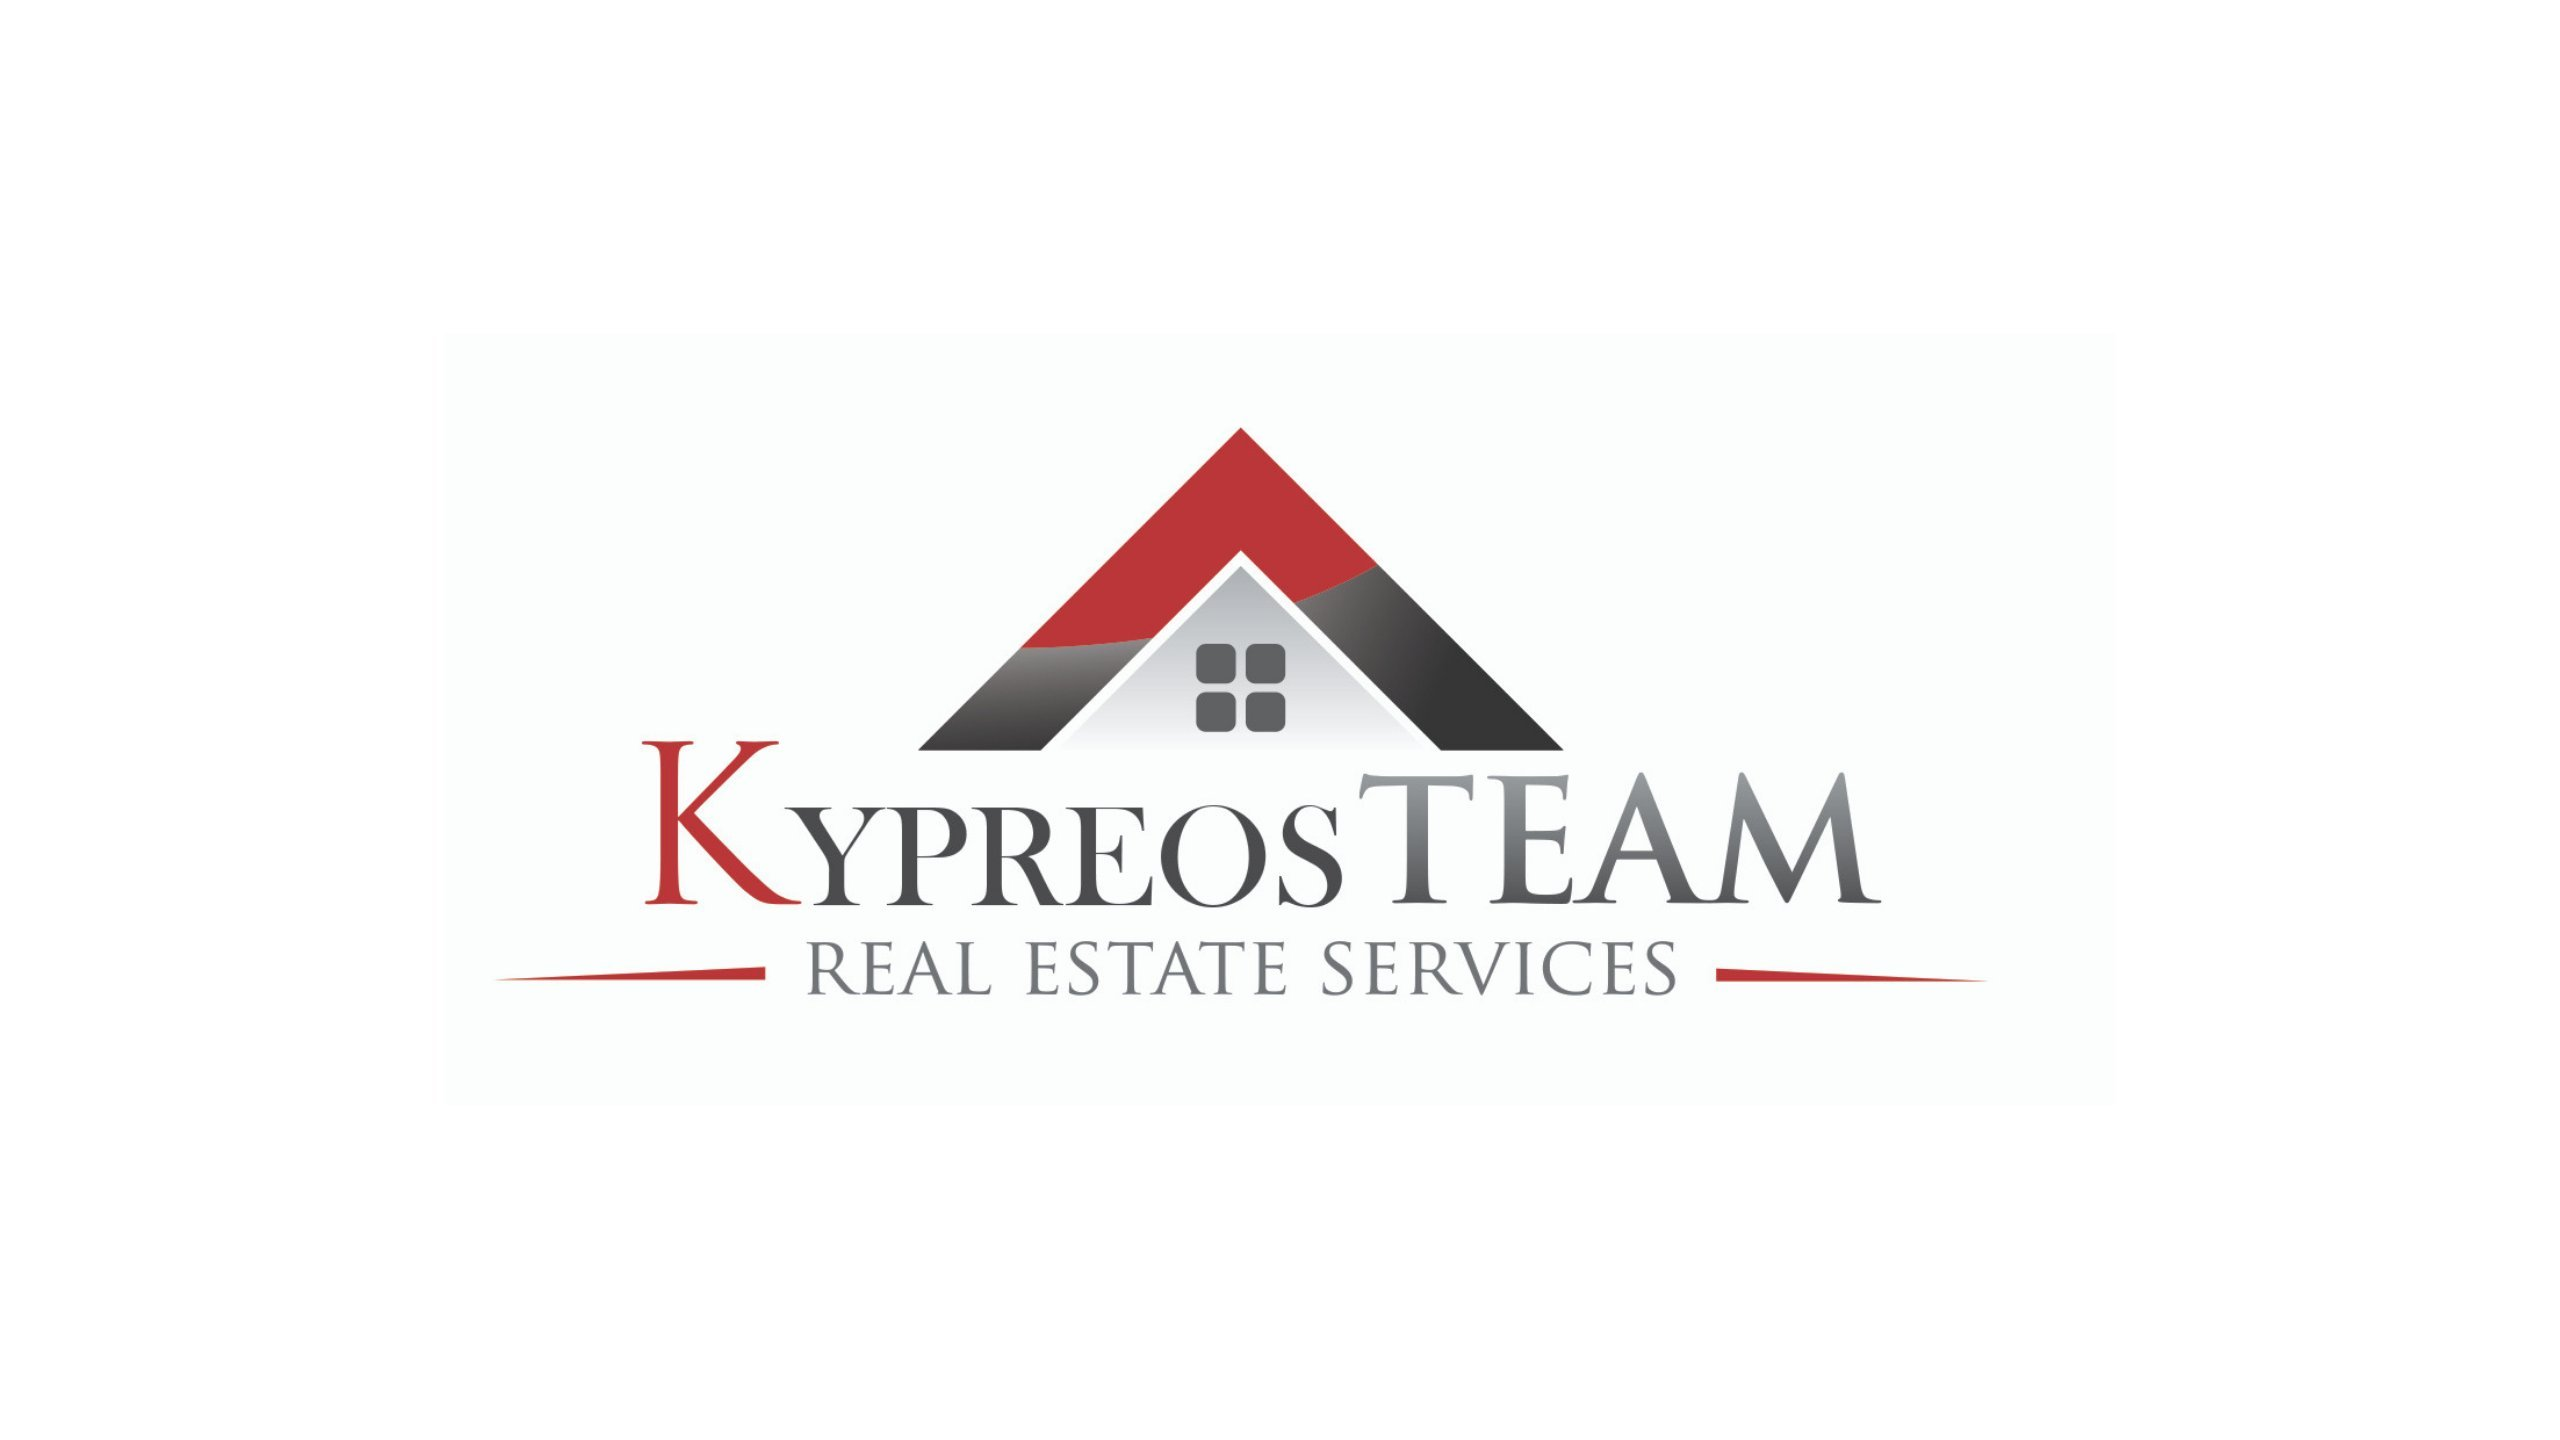 Kypreos Team | GK Properties